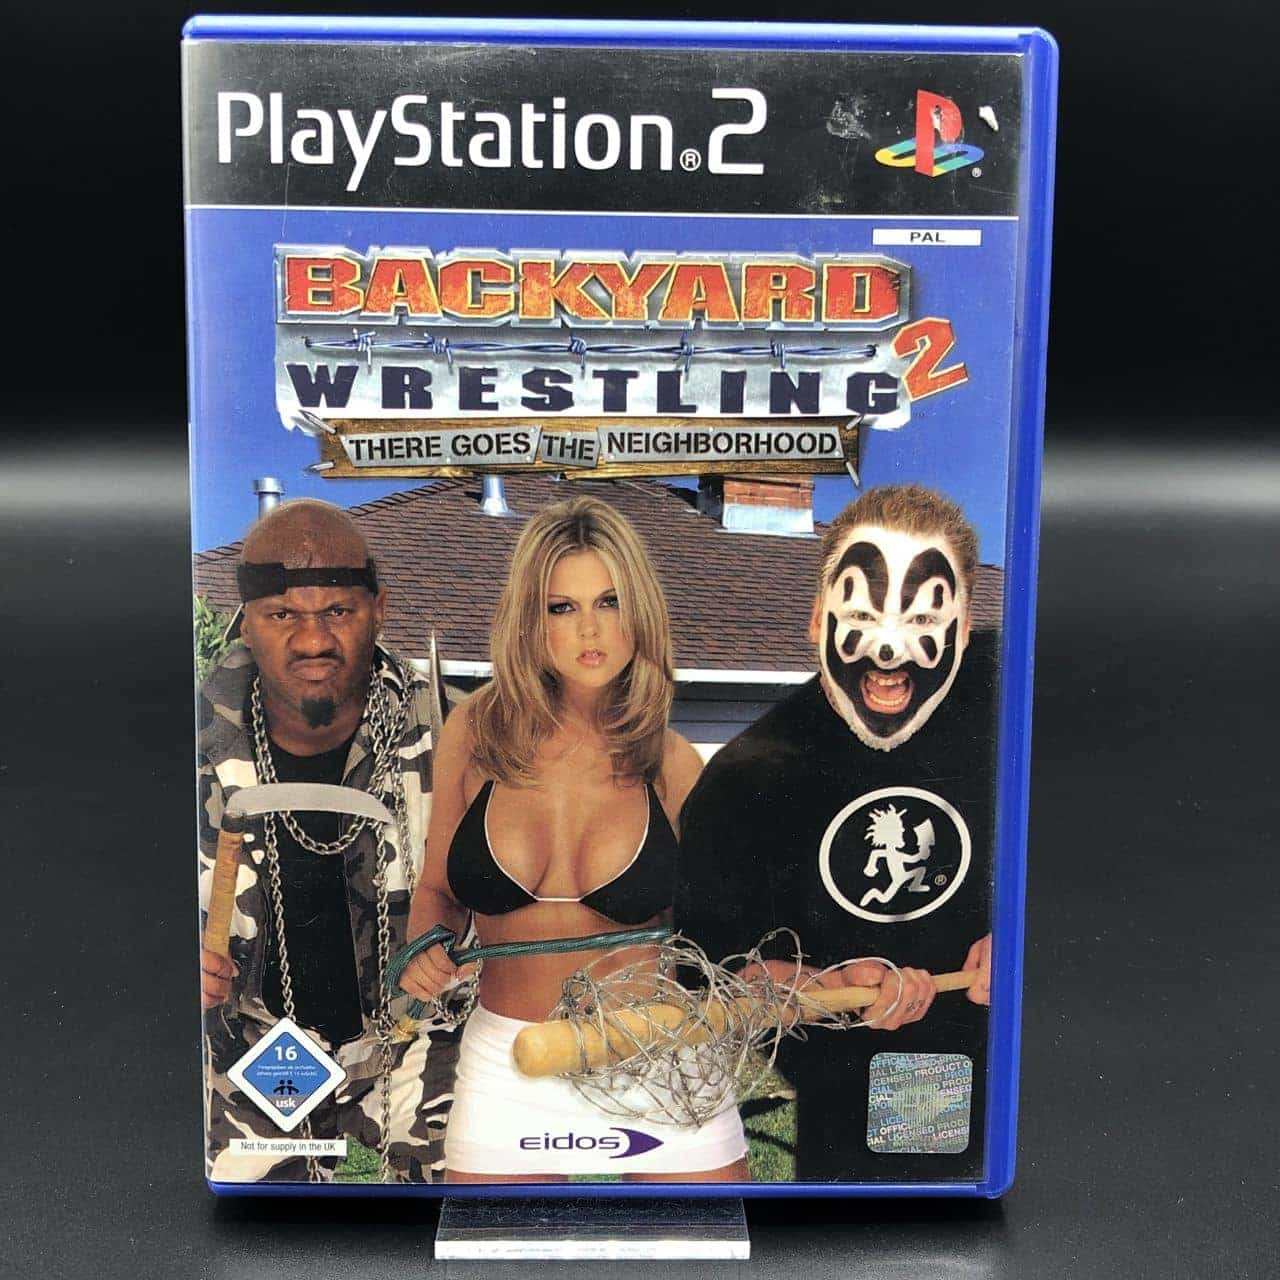 PS2 Backyard Wrestling 2: There Goes the Neighborhood (Komplett) (Sehr gut) Sony PlayStation 2